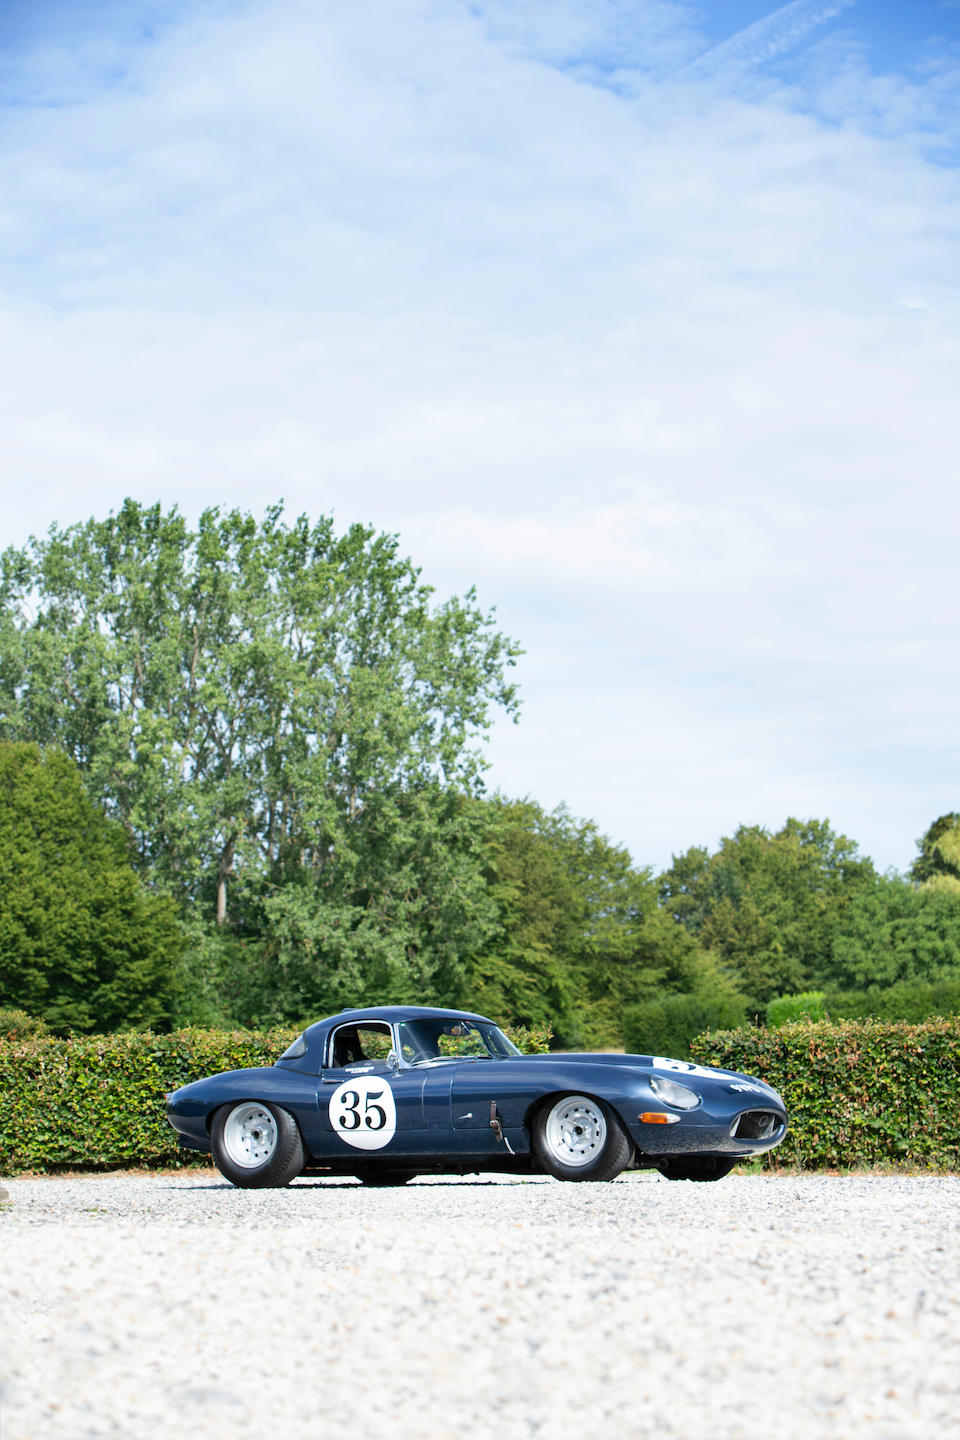 1961 Jaguar E-Type Semi-Lightweight Competition Roadster with Hardtop  Chassis no. 850007